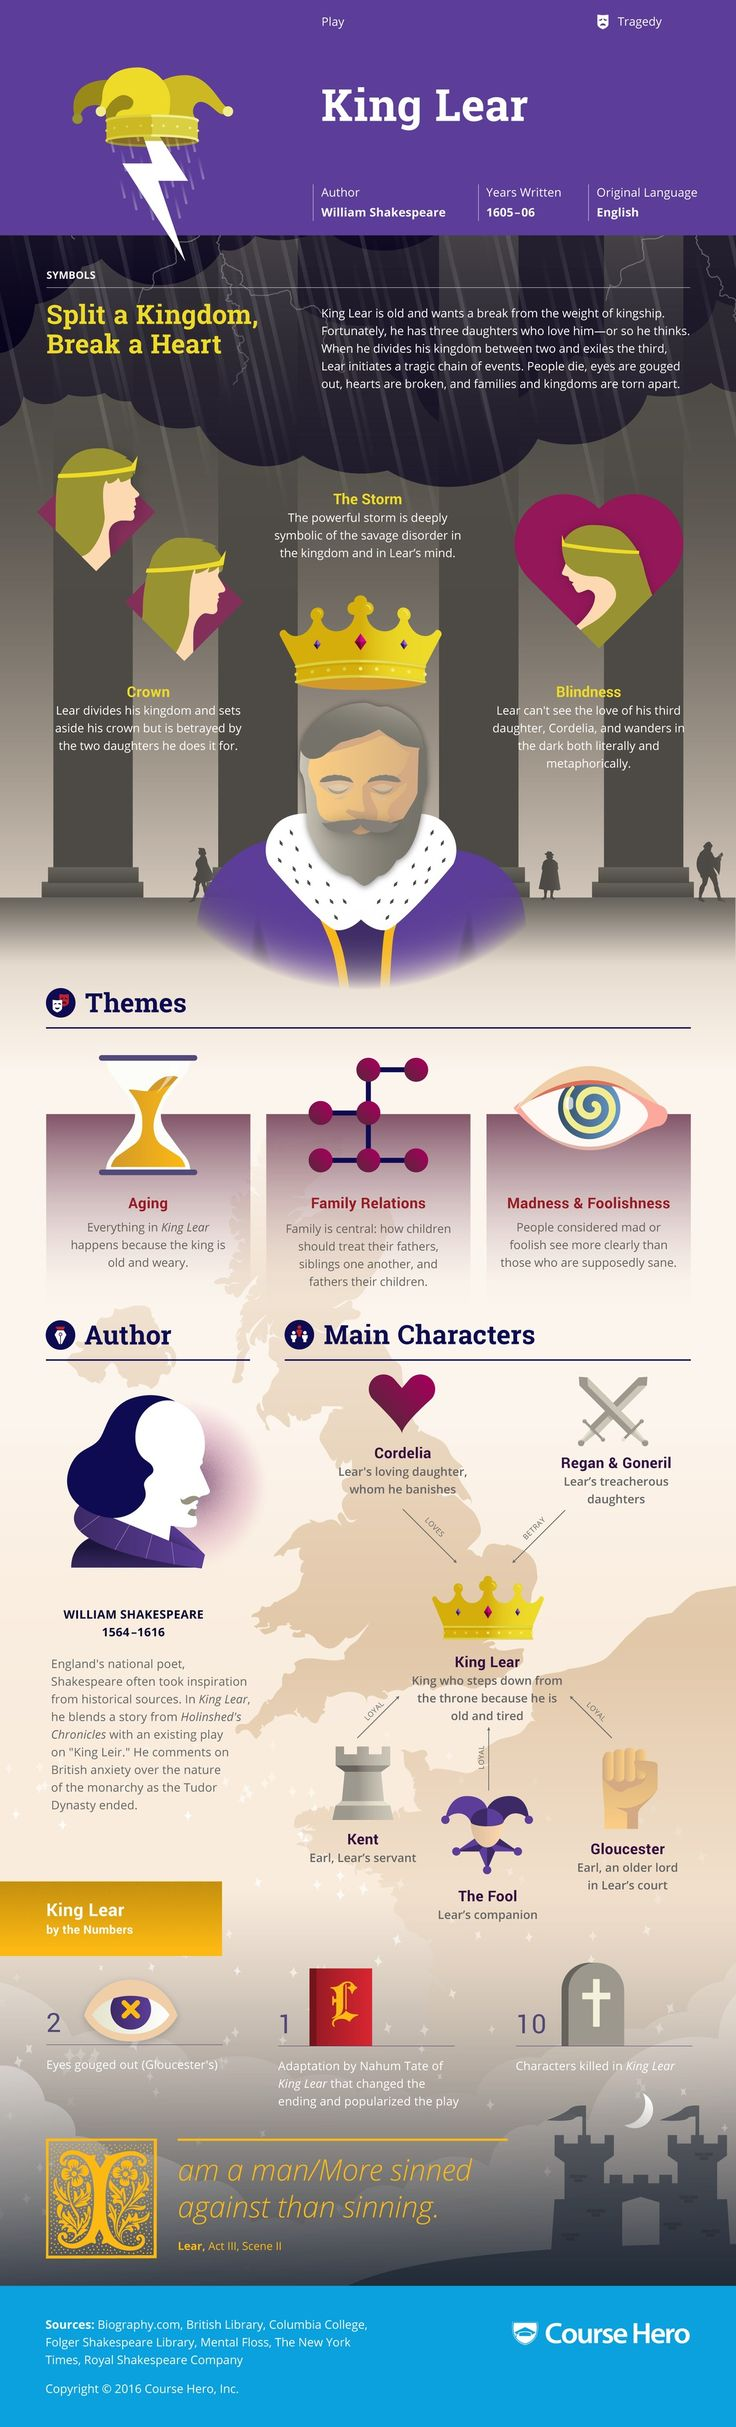 King Lear Infographic | Course Hero